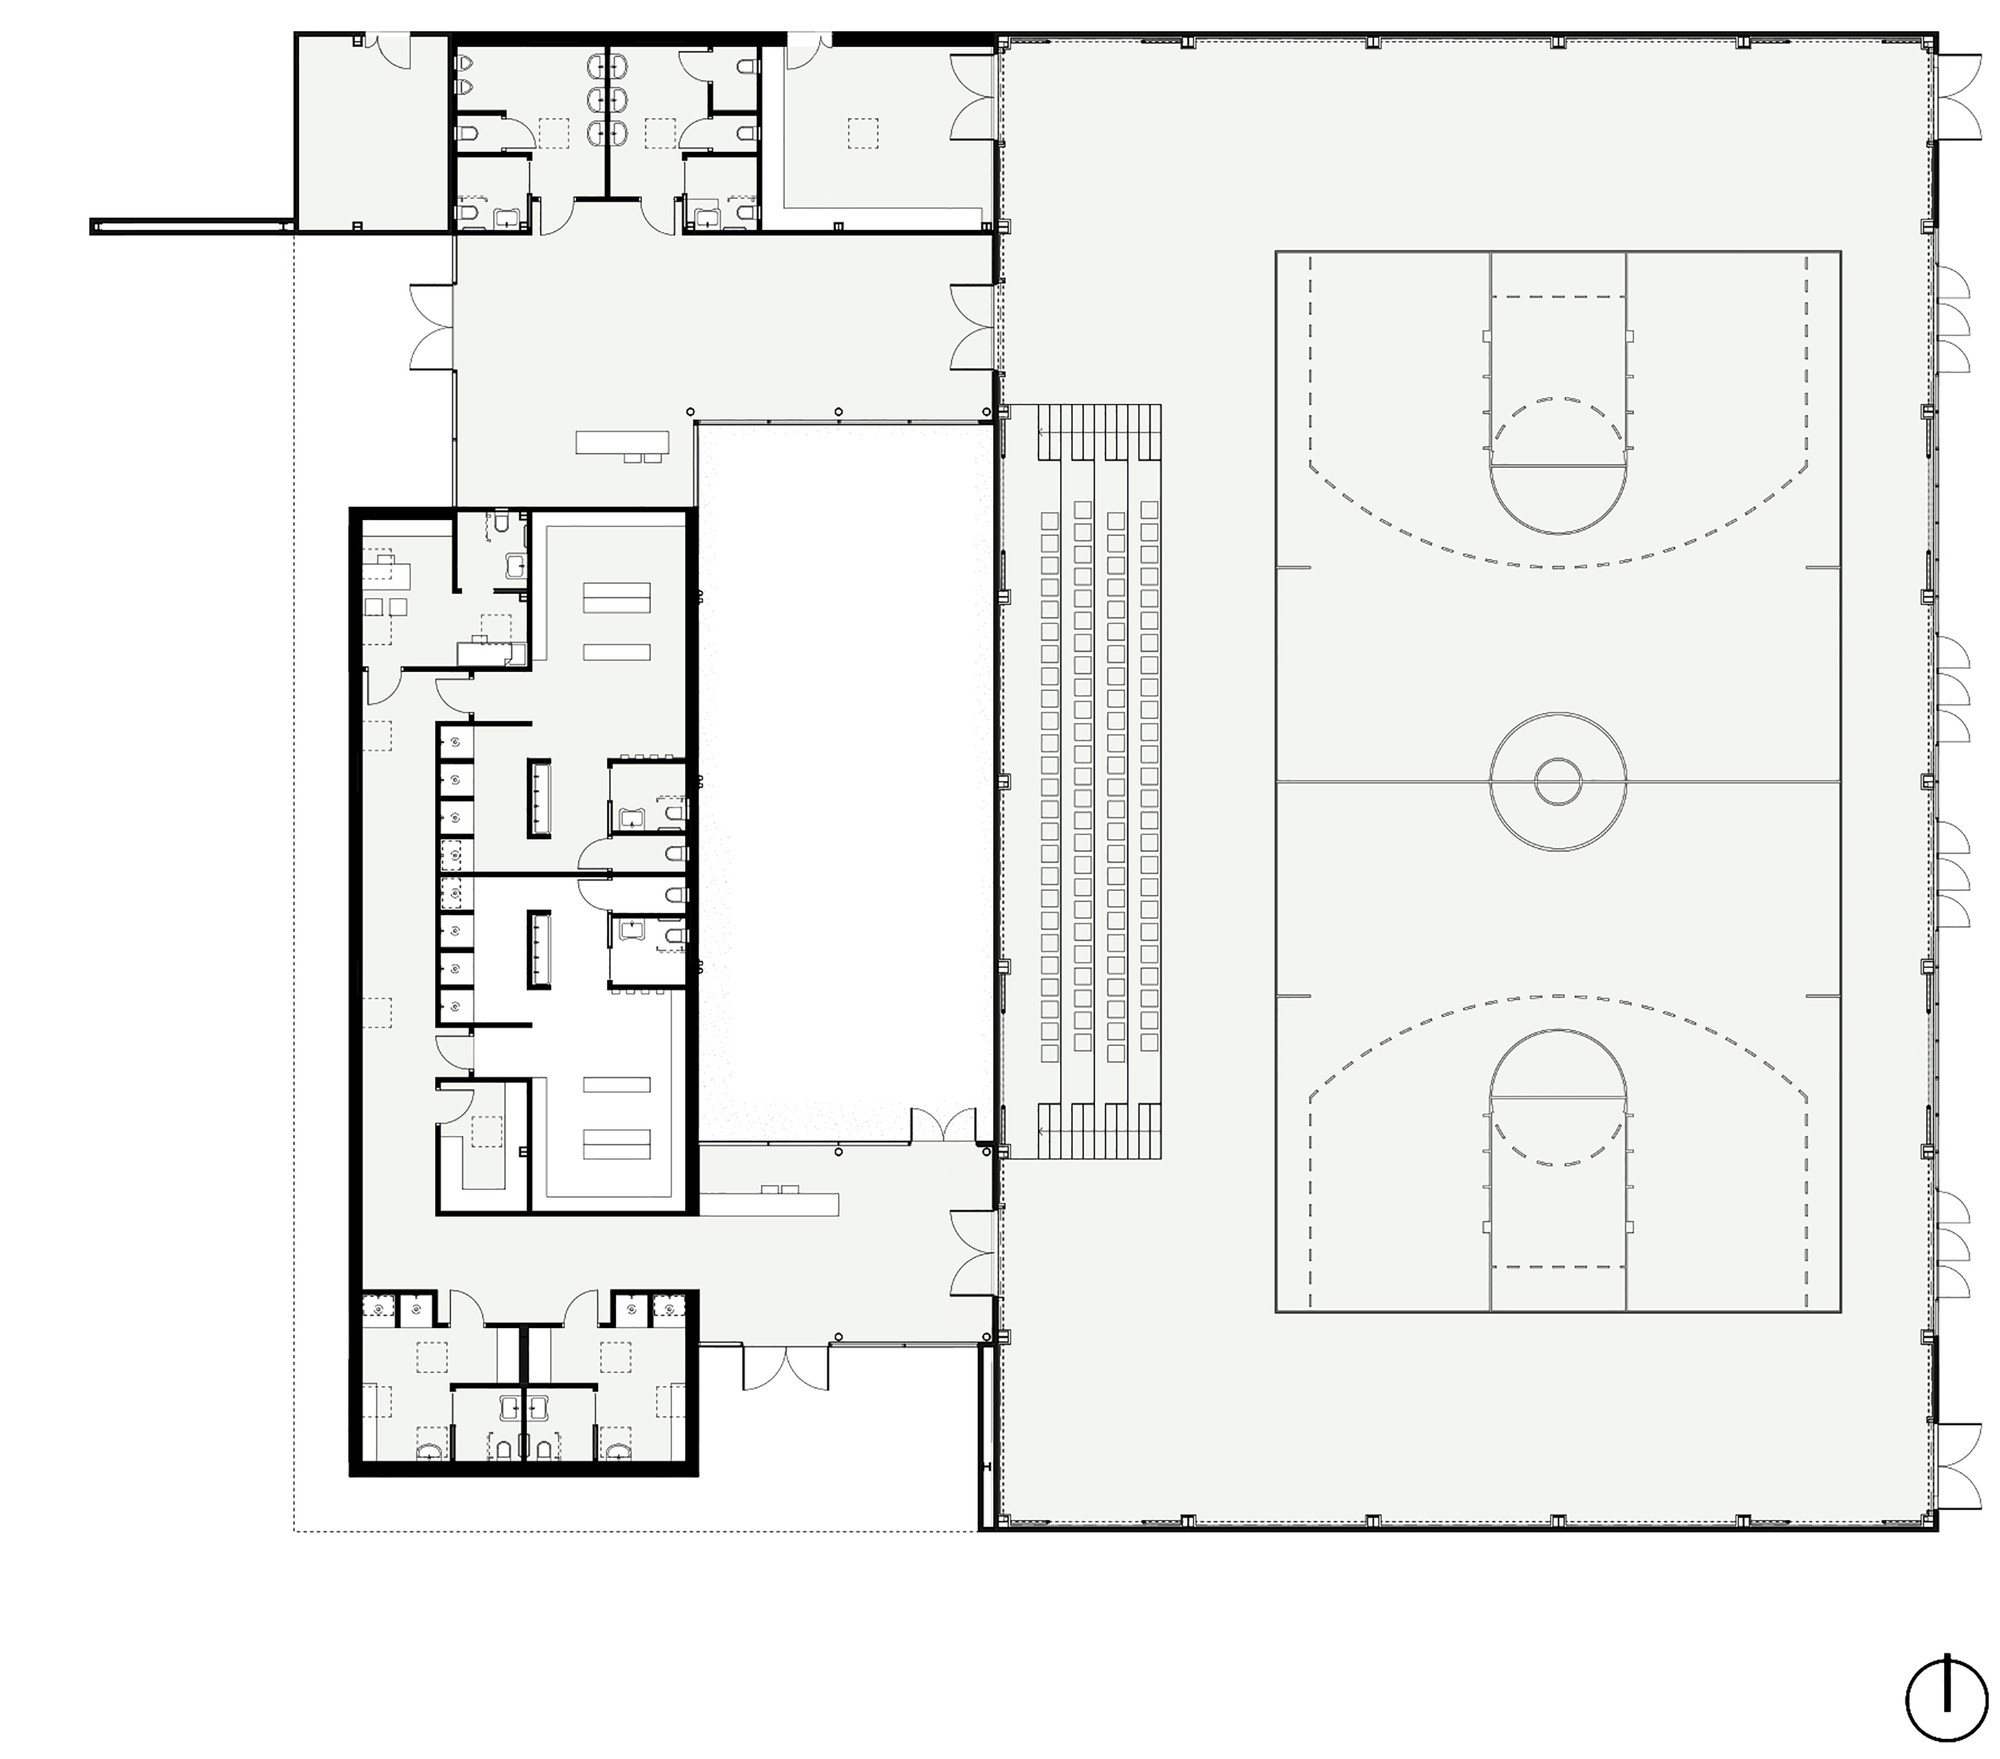 Floor Plan Blueprint Gallery Of Temporary School Gymnasium Mide Architetti